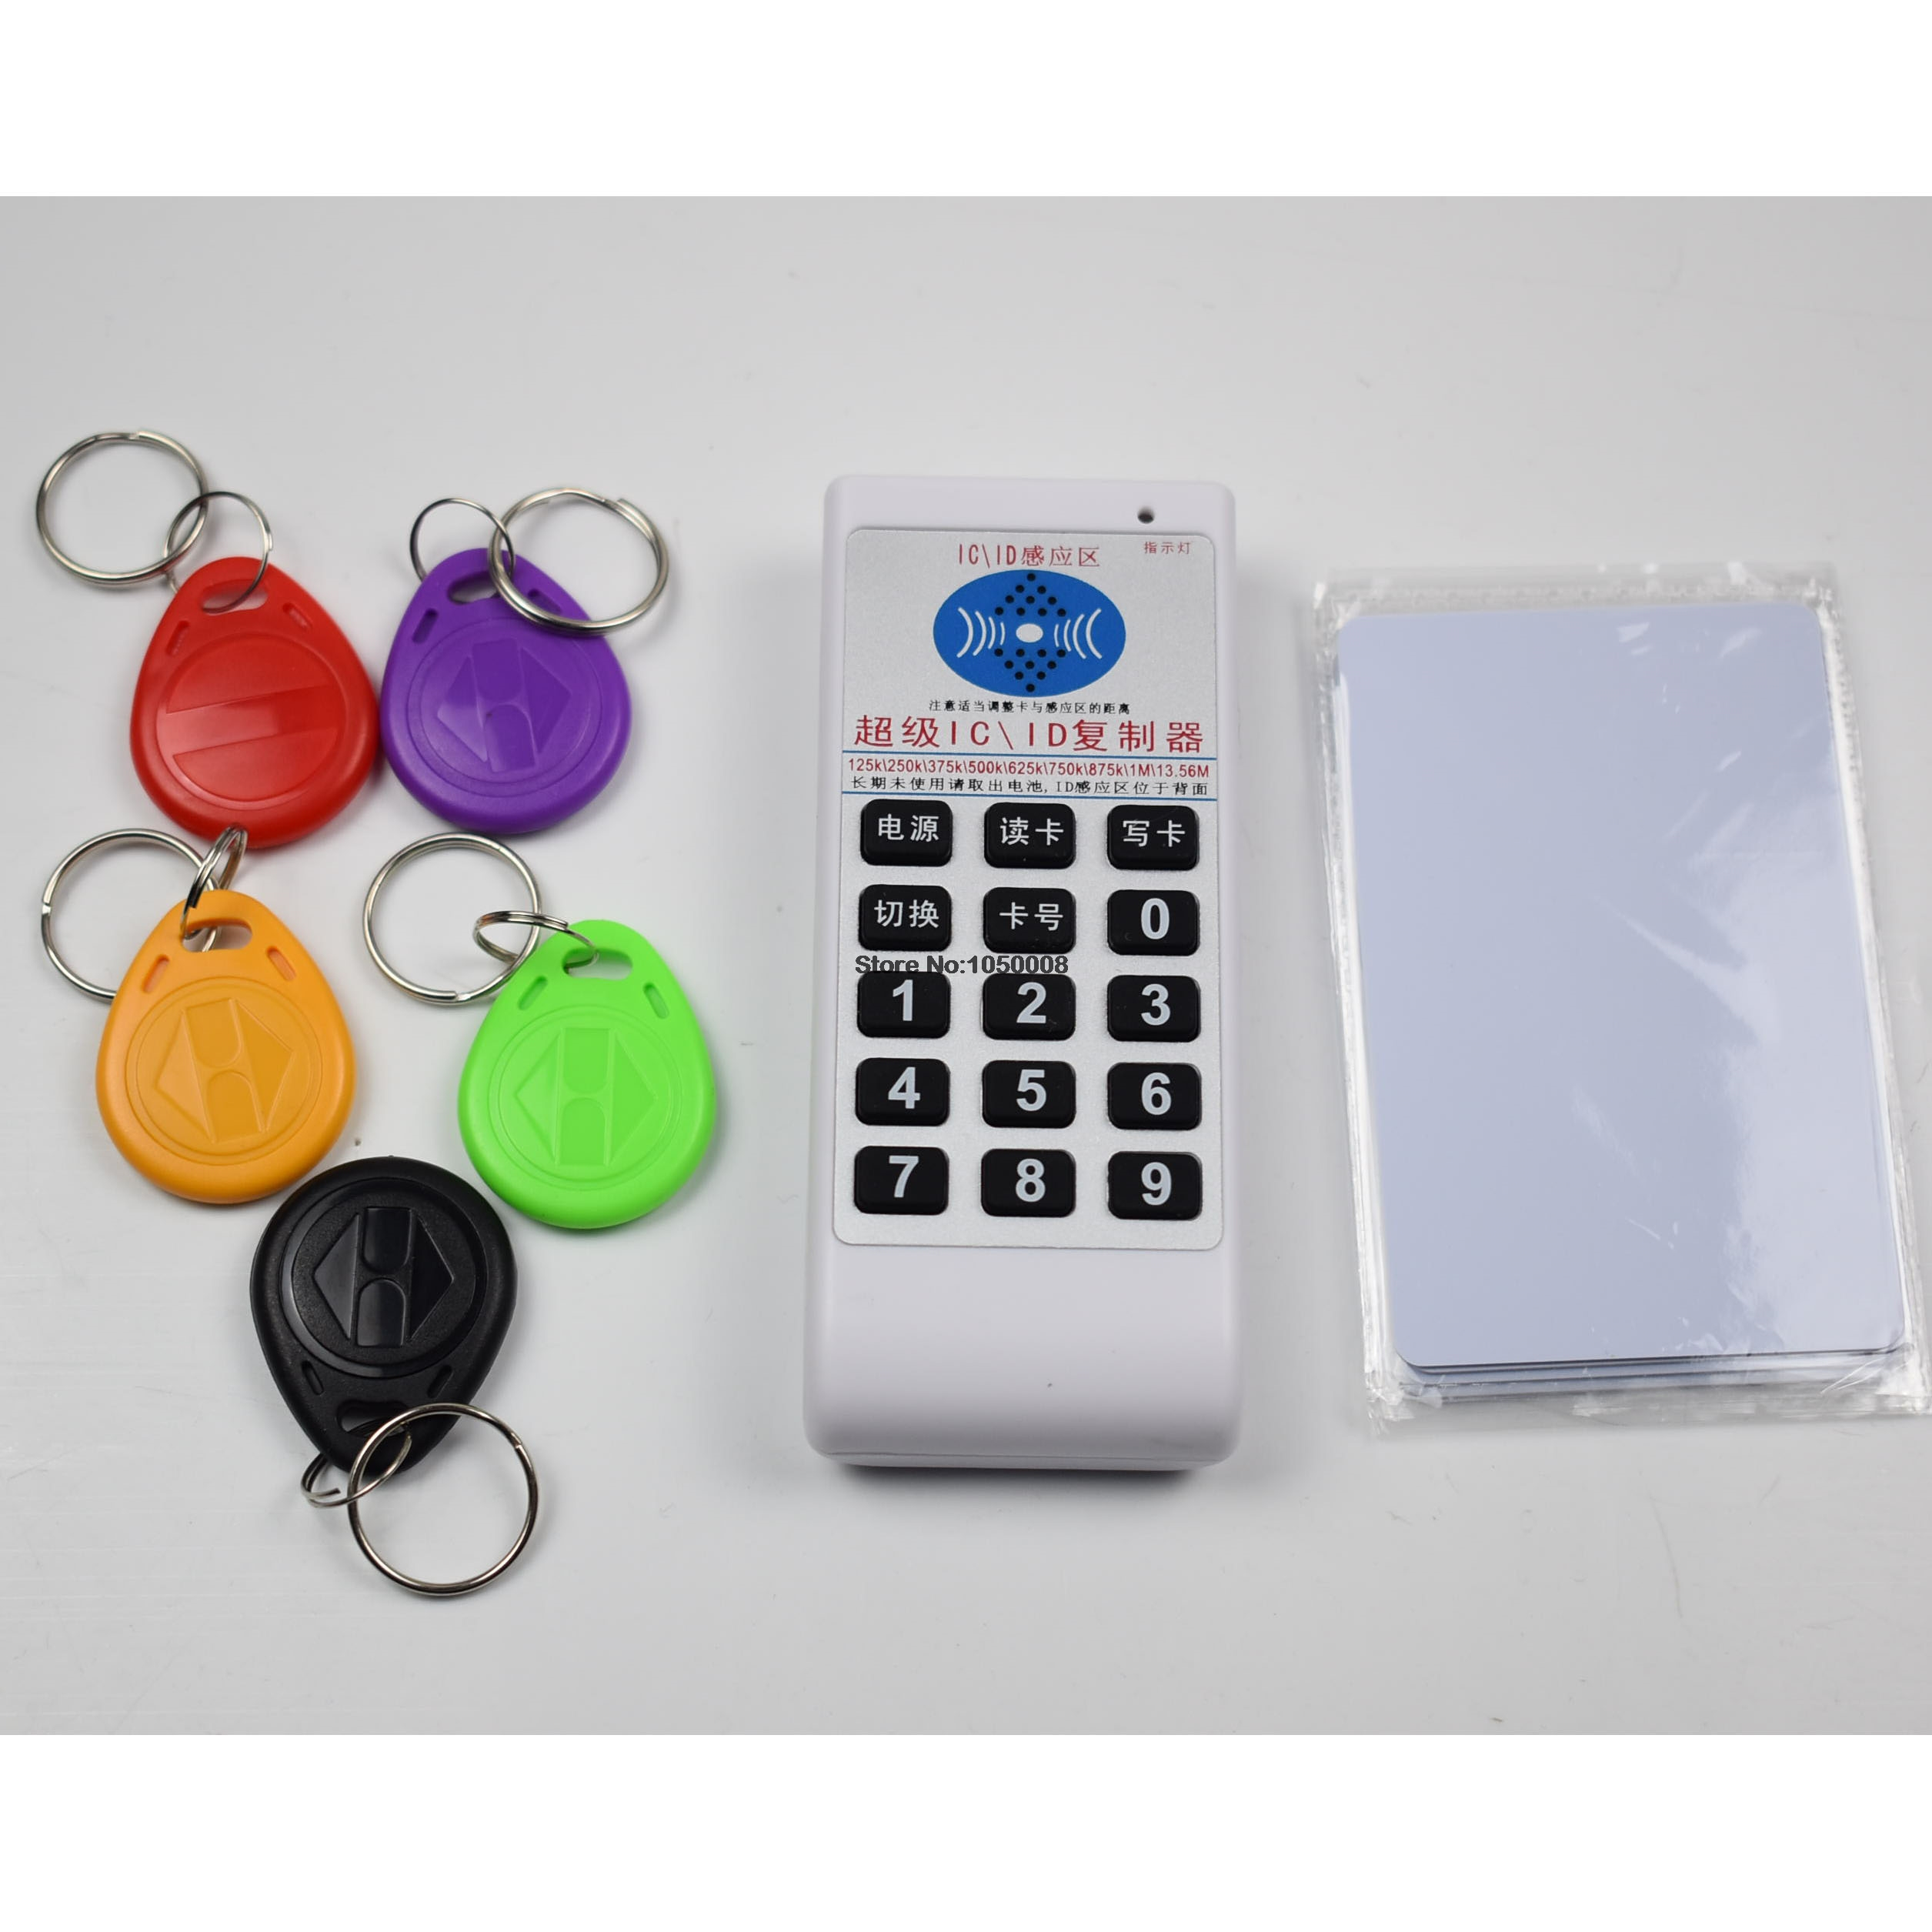 NFC RFID 13.56Mhz 125khz IC ID Copier Duplicator Cloner reader writer 9 Frequency + 5pcs 125khz T5577 Writable Tags & Cards погремушки simba букашка прорезыватель